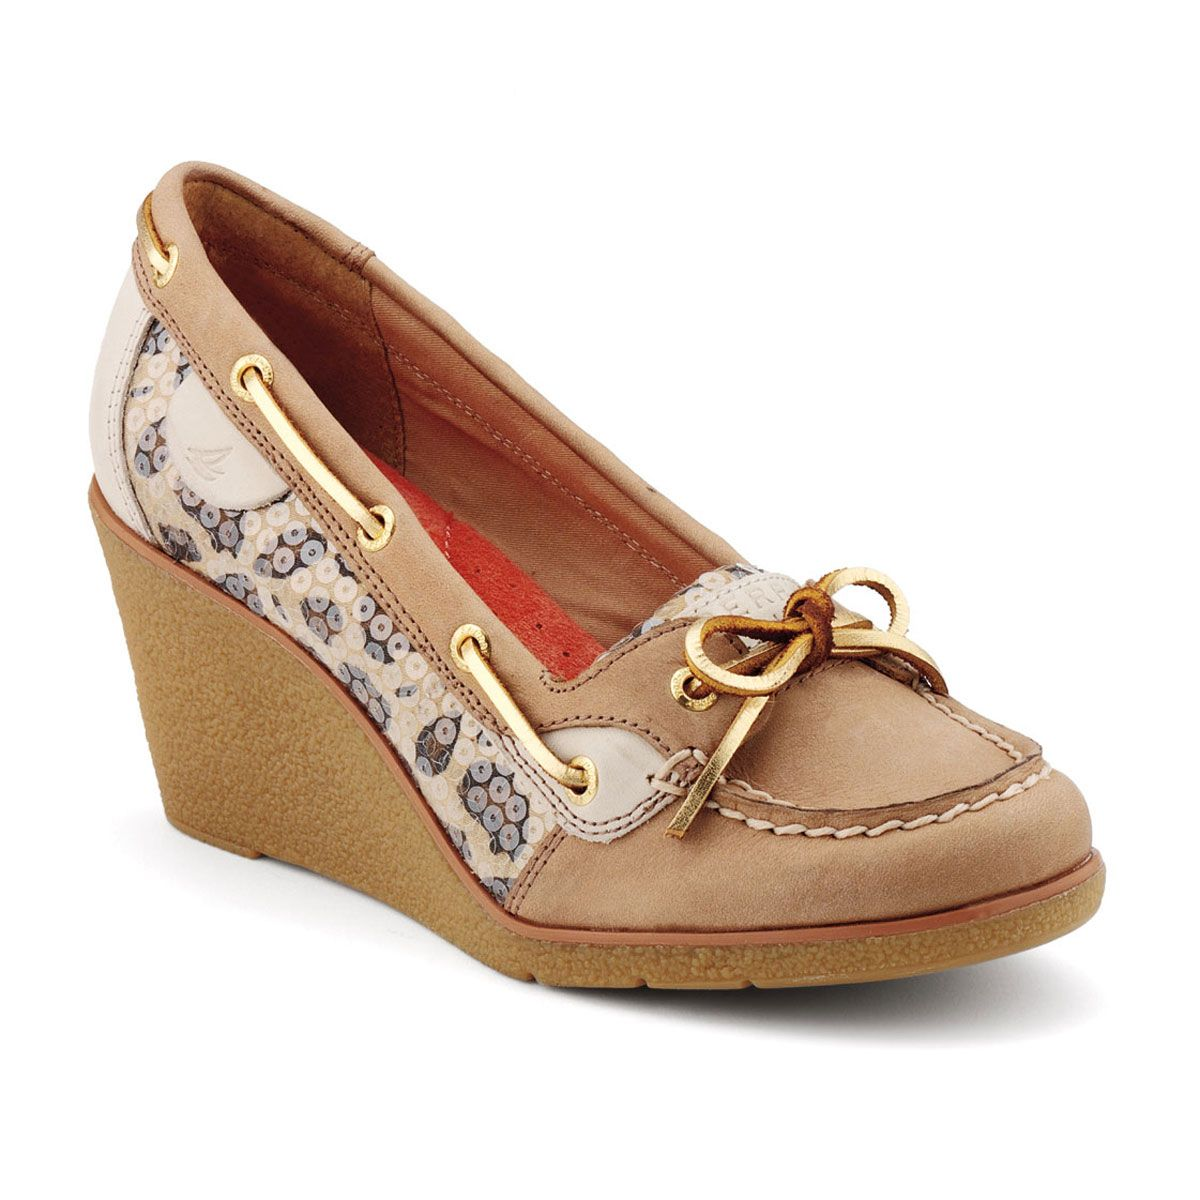 these sperry wedges walk this way